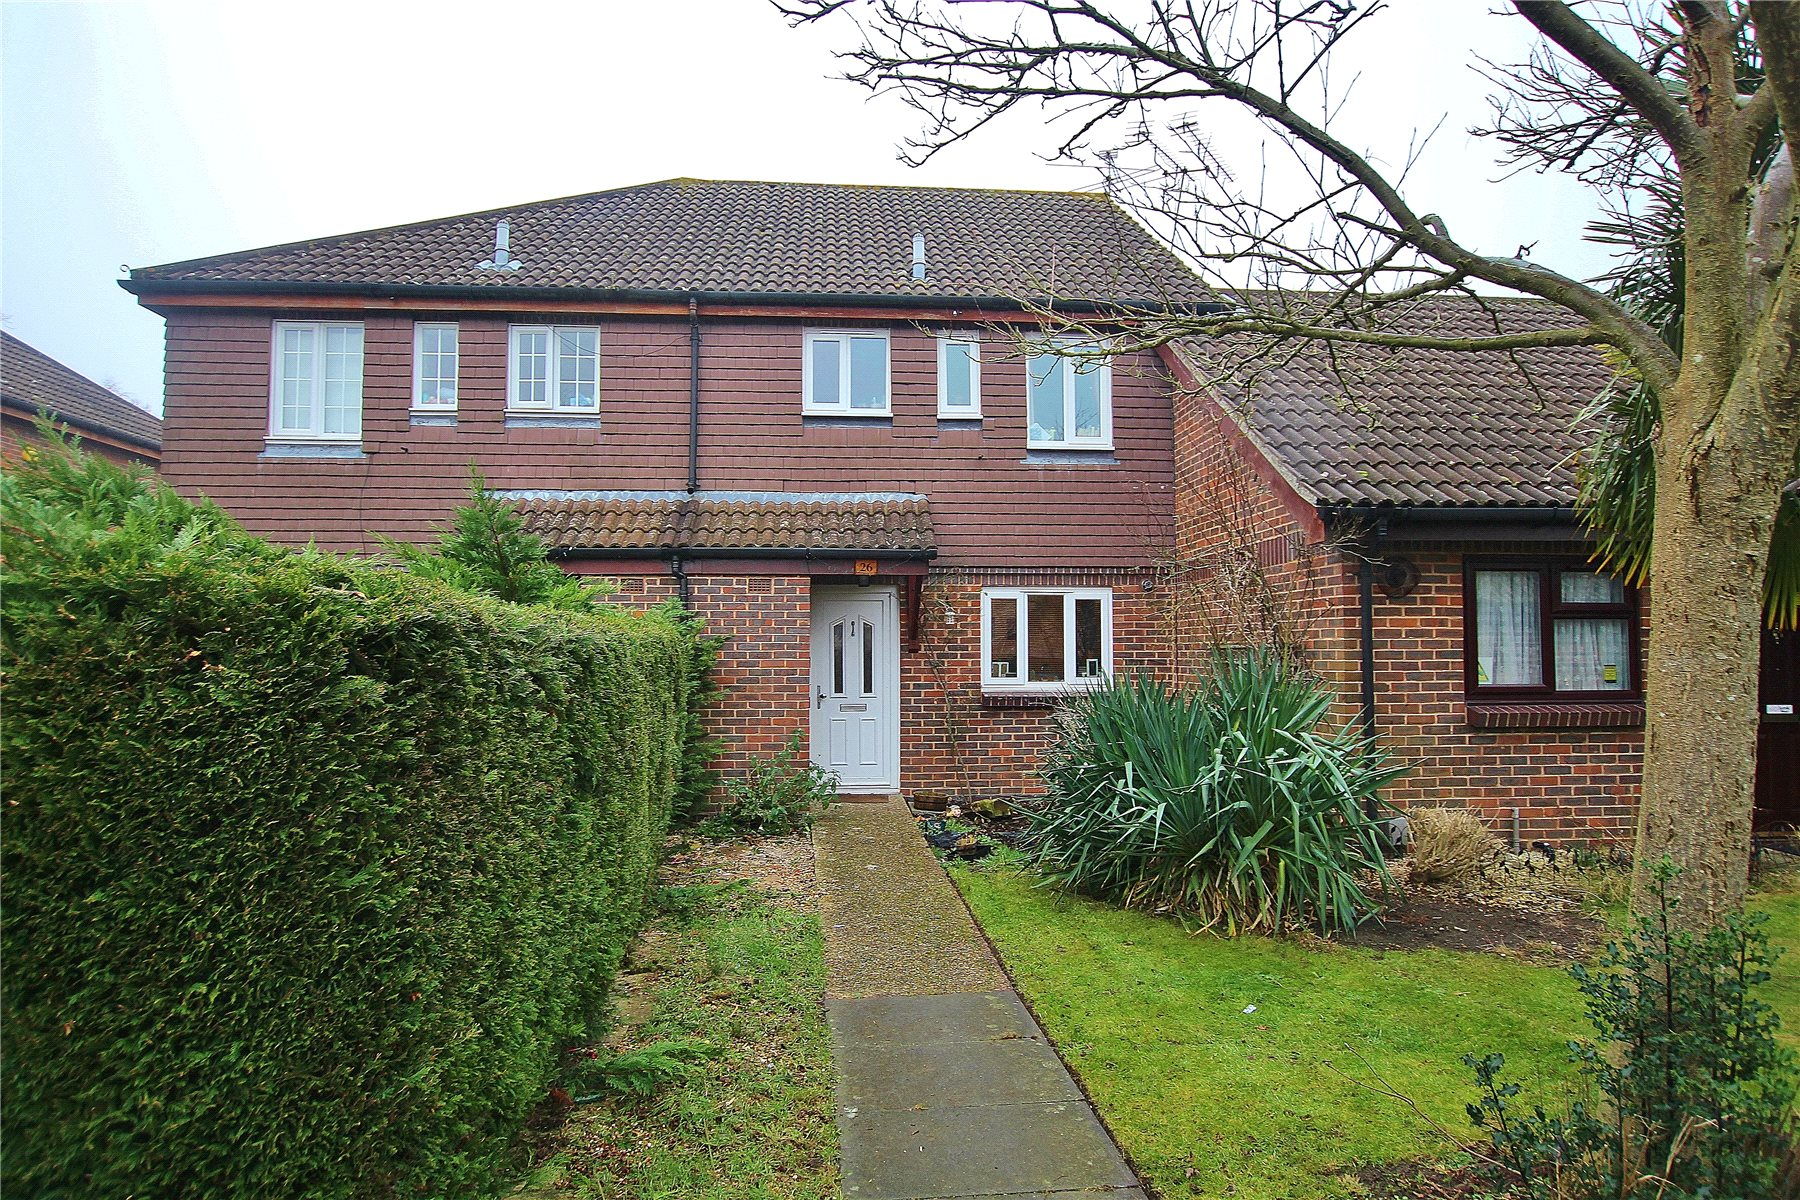 3 Bedrooms Terraced House for sale in Robertson Court, St Johns, Woking, GU21